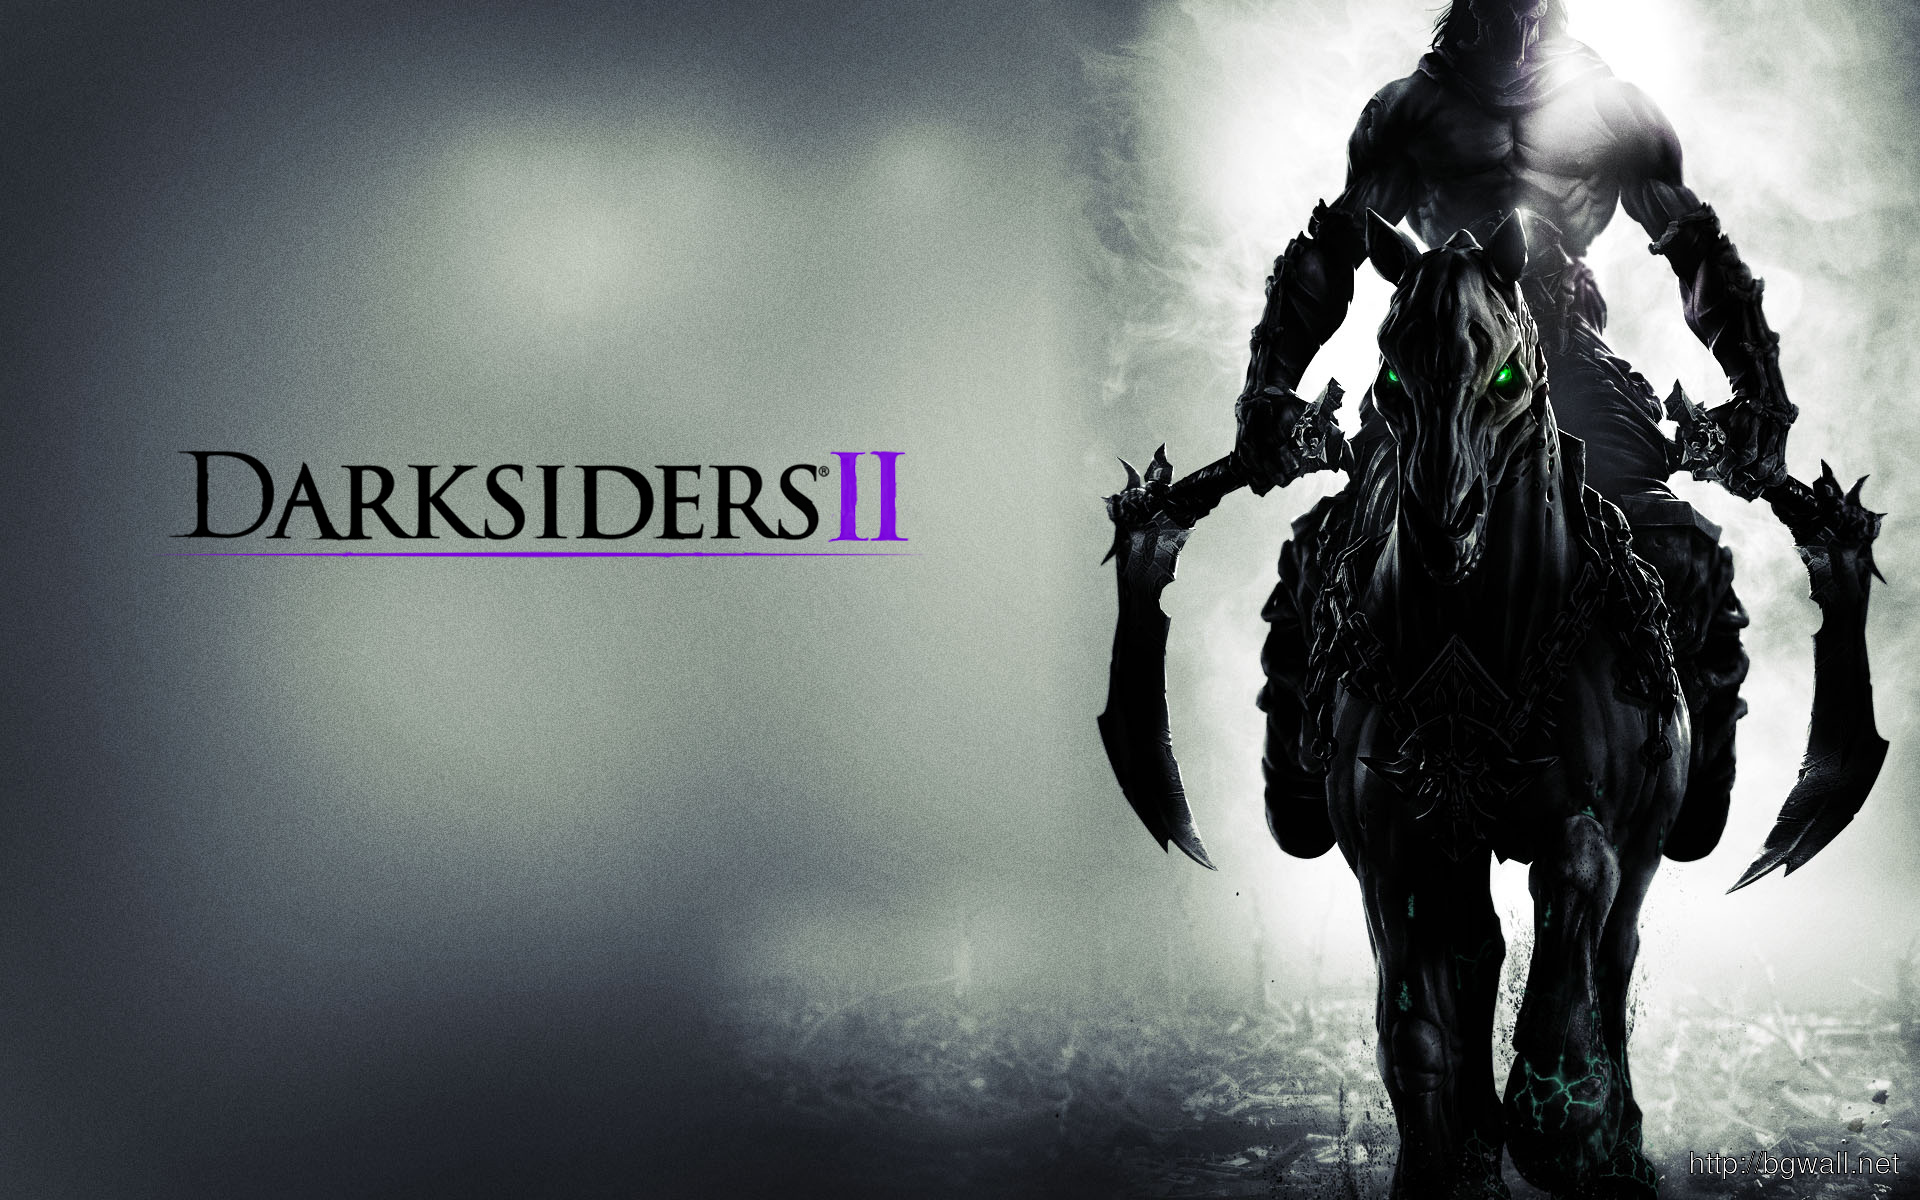 Darksiders 2 Ps3 Wallpapers